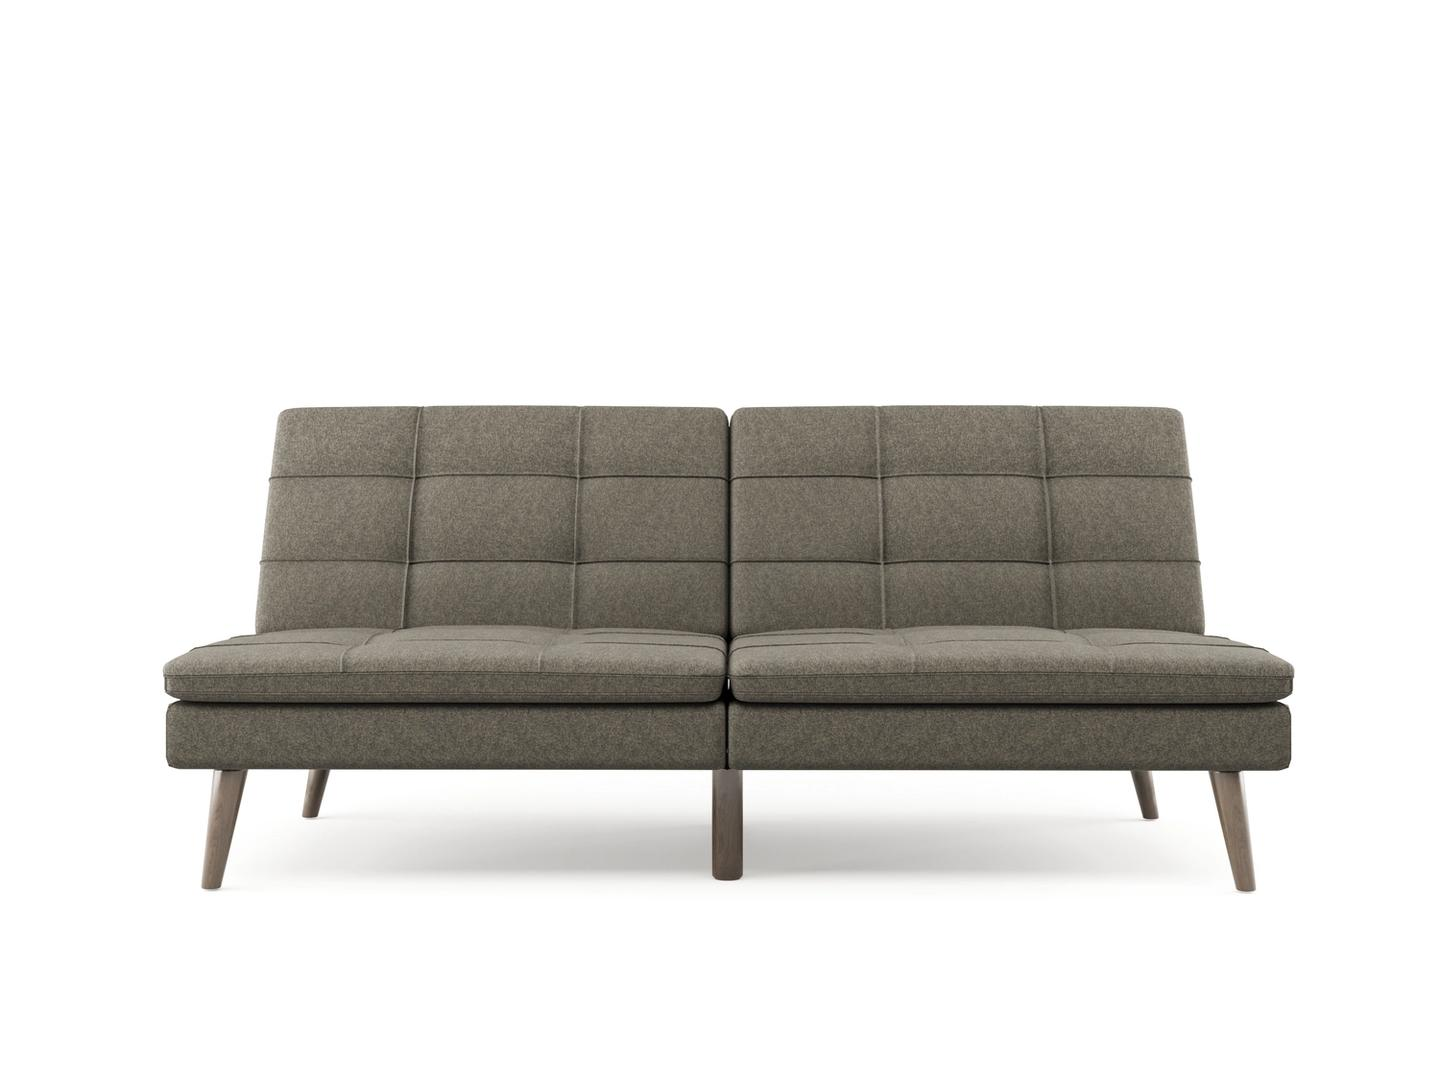 3D Modeling of a grey sofa on white background